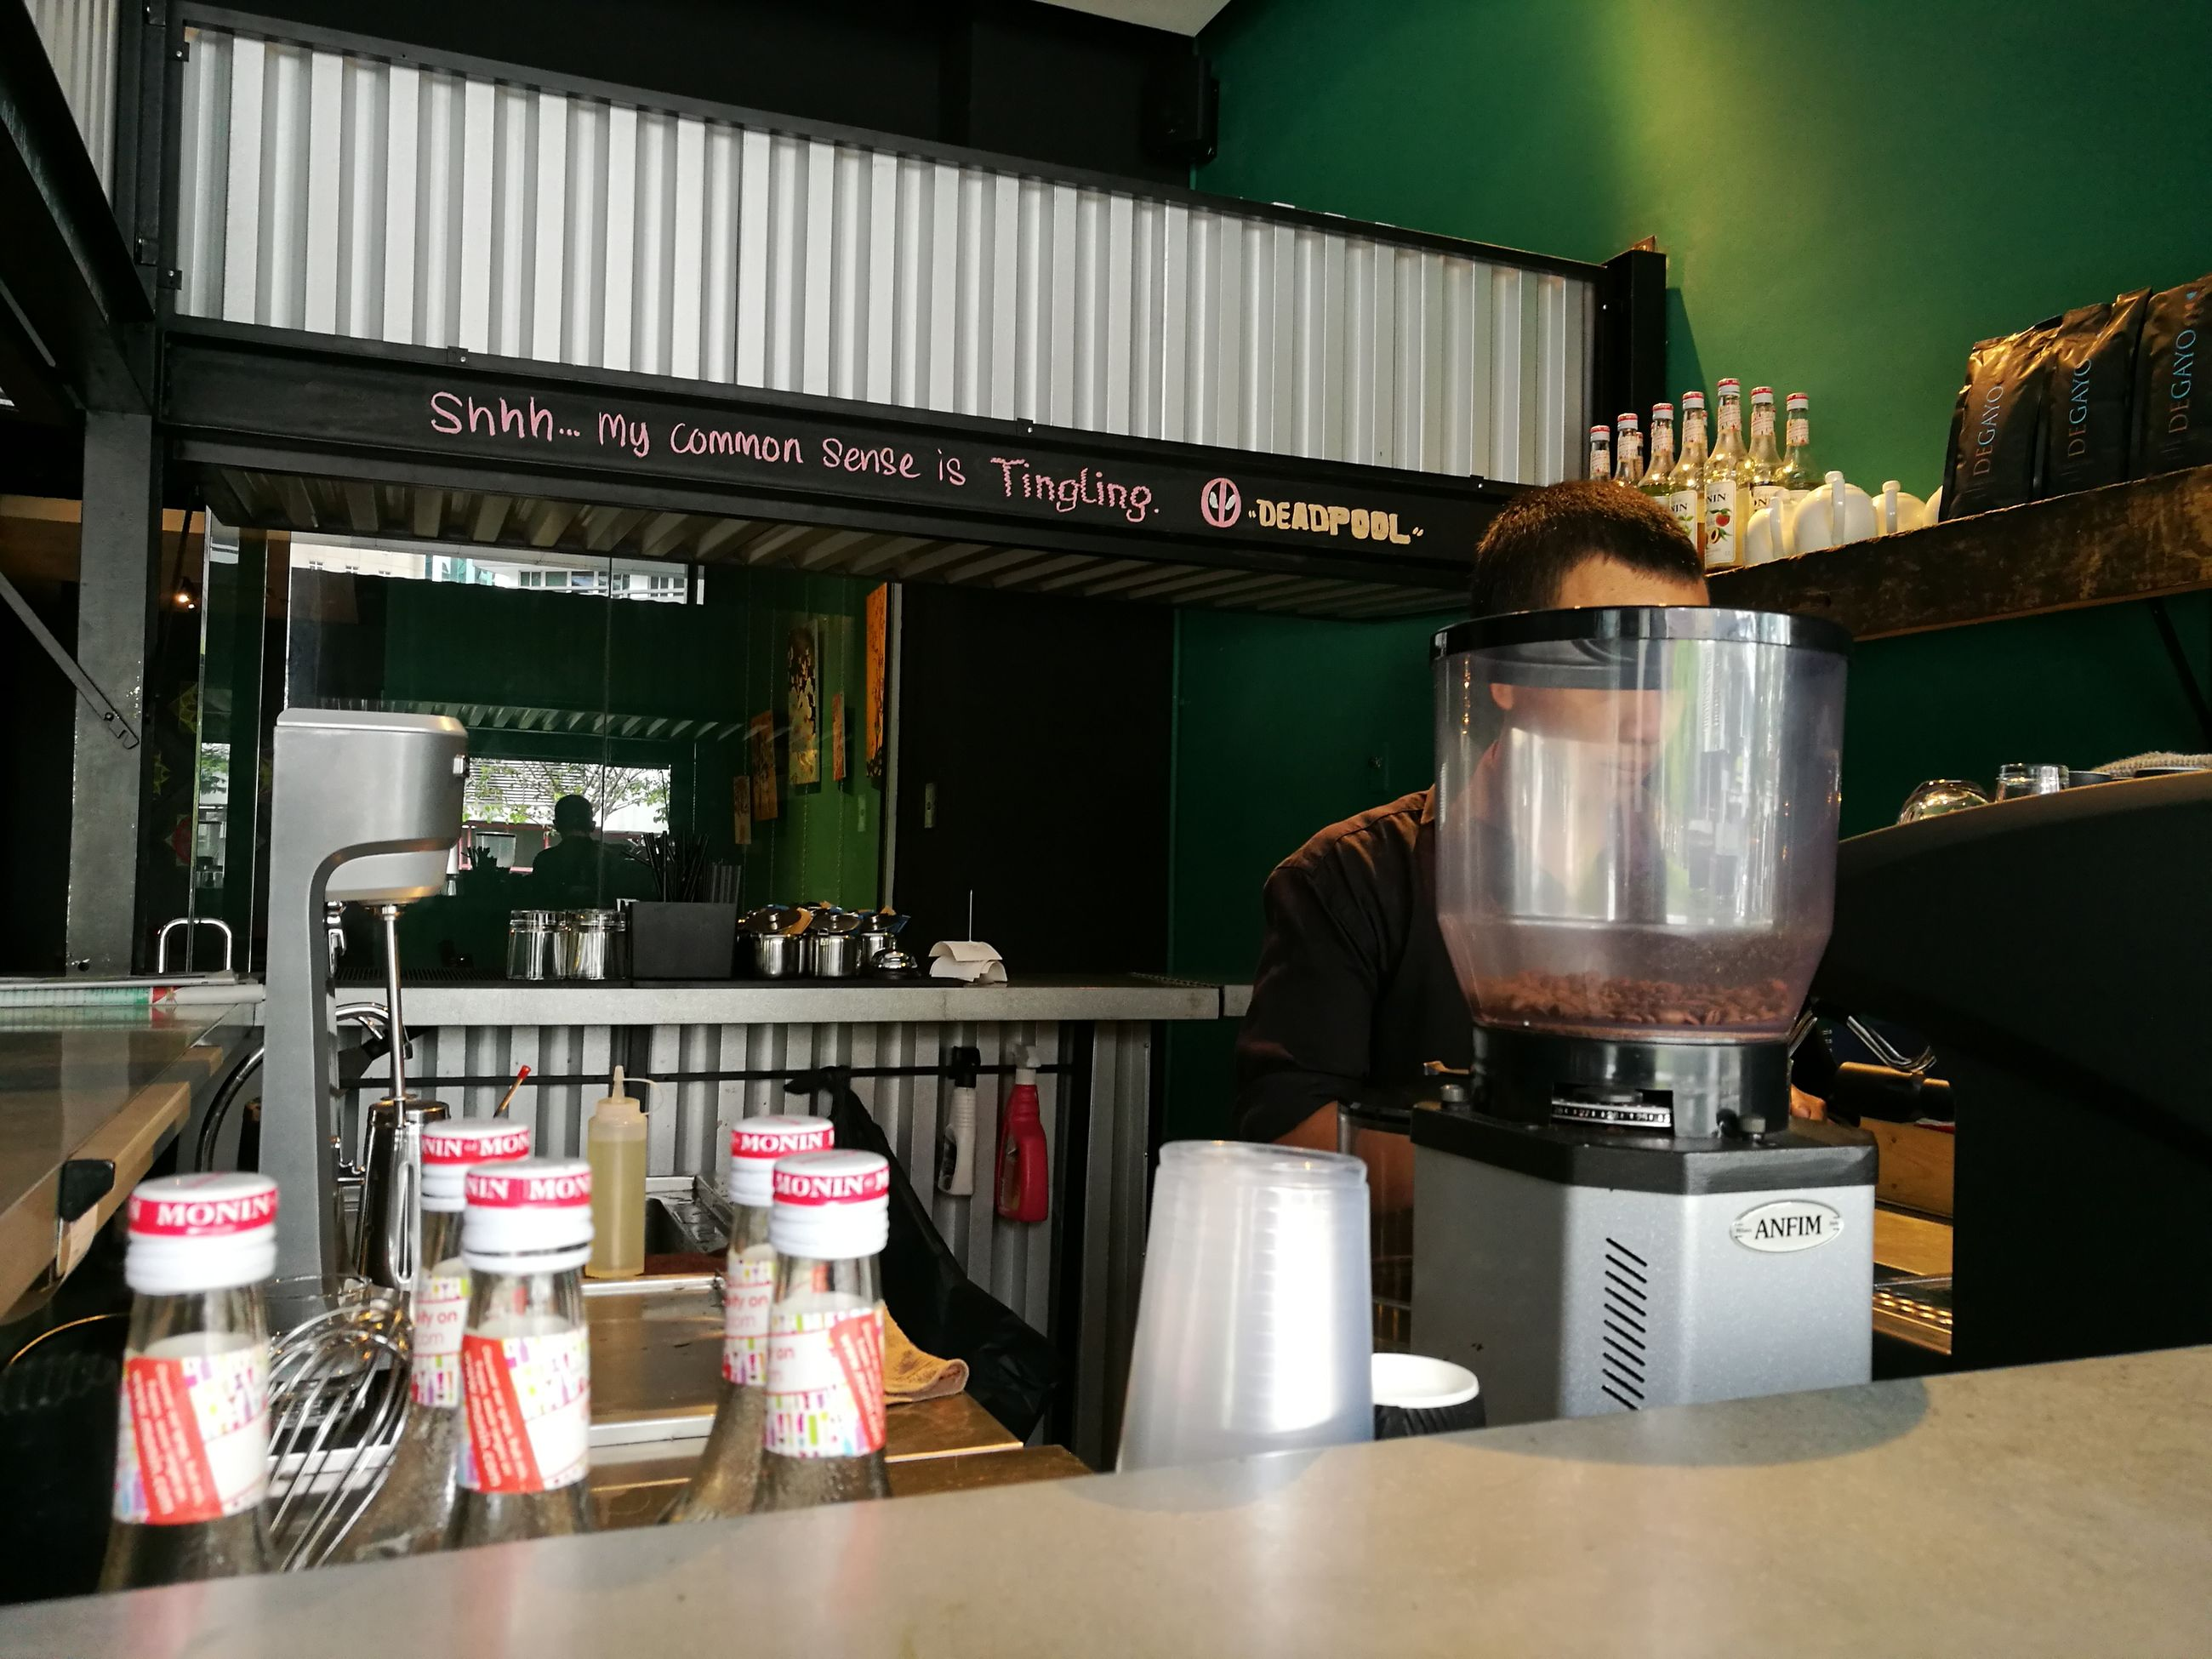 drink, indoors, bar counter, food and drink, business finance and industry, table, food and drink industry, no people, espresso maker, day